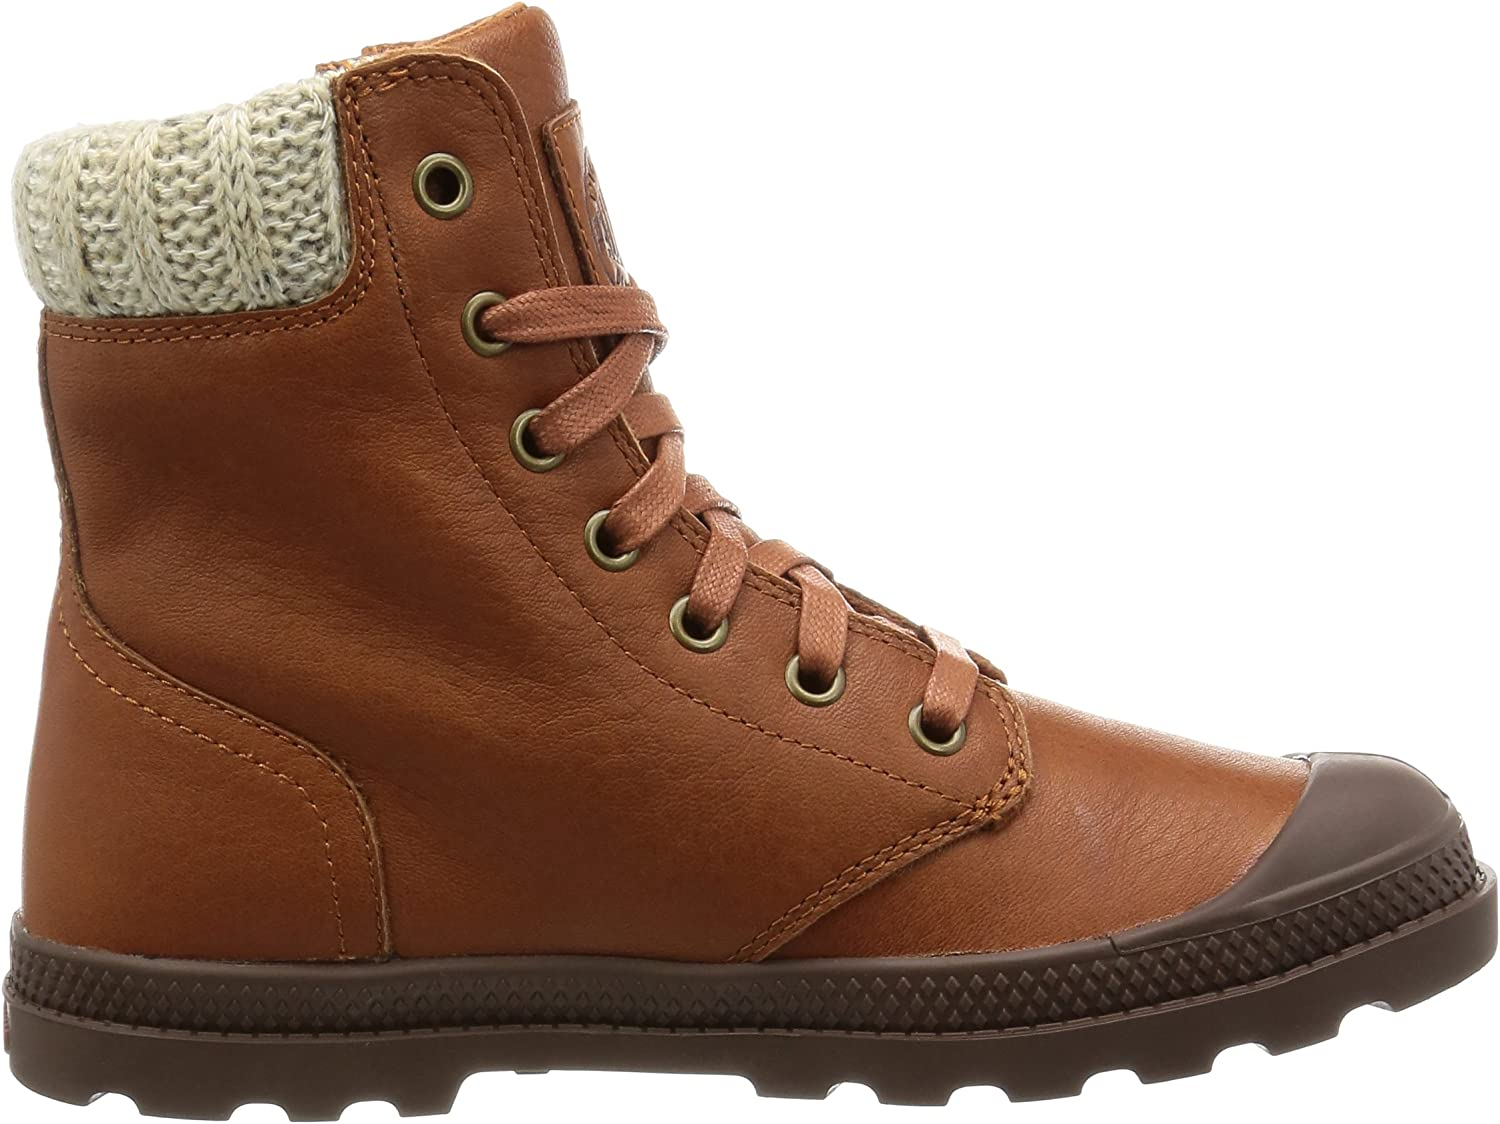 Palladium Boots Womens Pampa Hi Knit LP Chukka Boot Brown Mocha Bisque